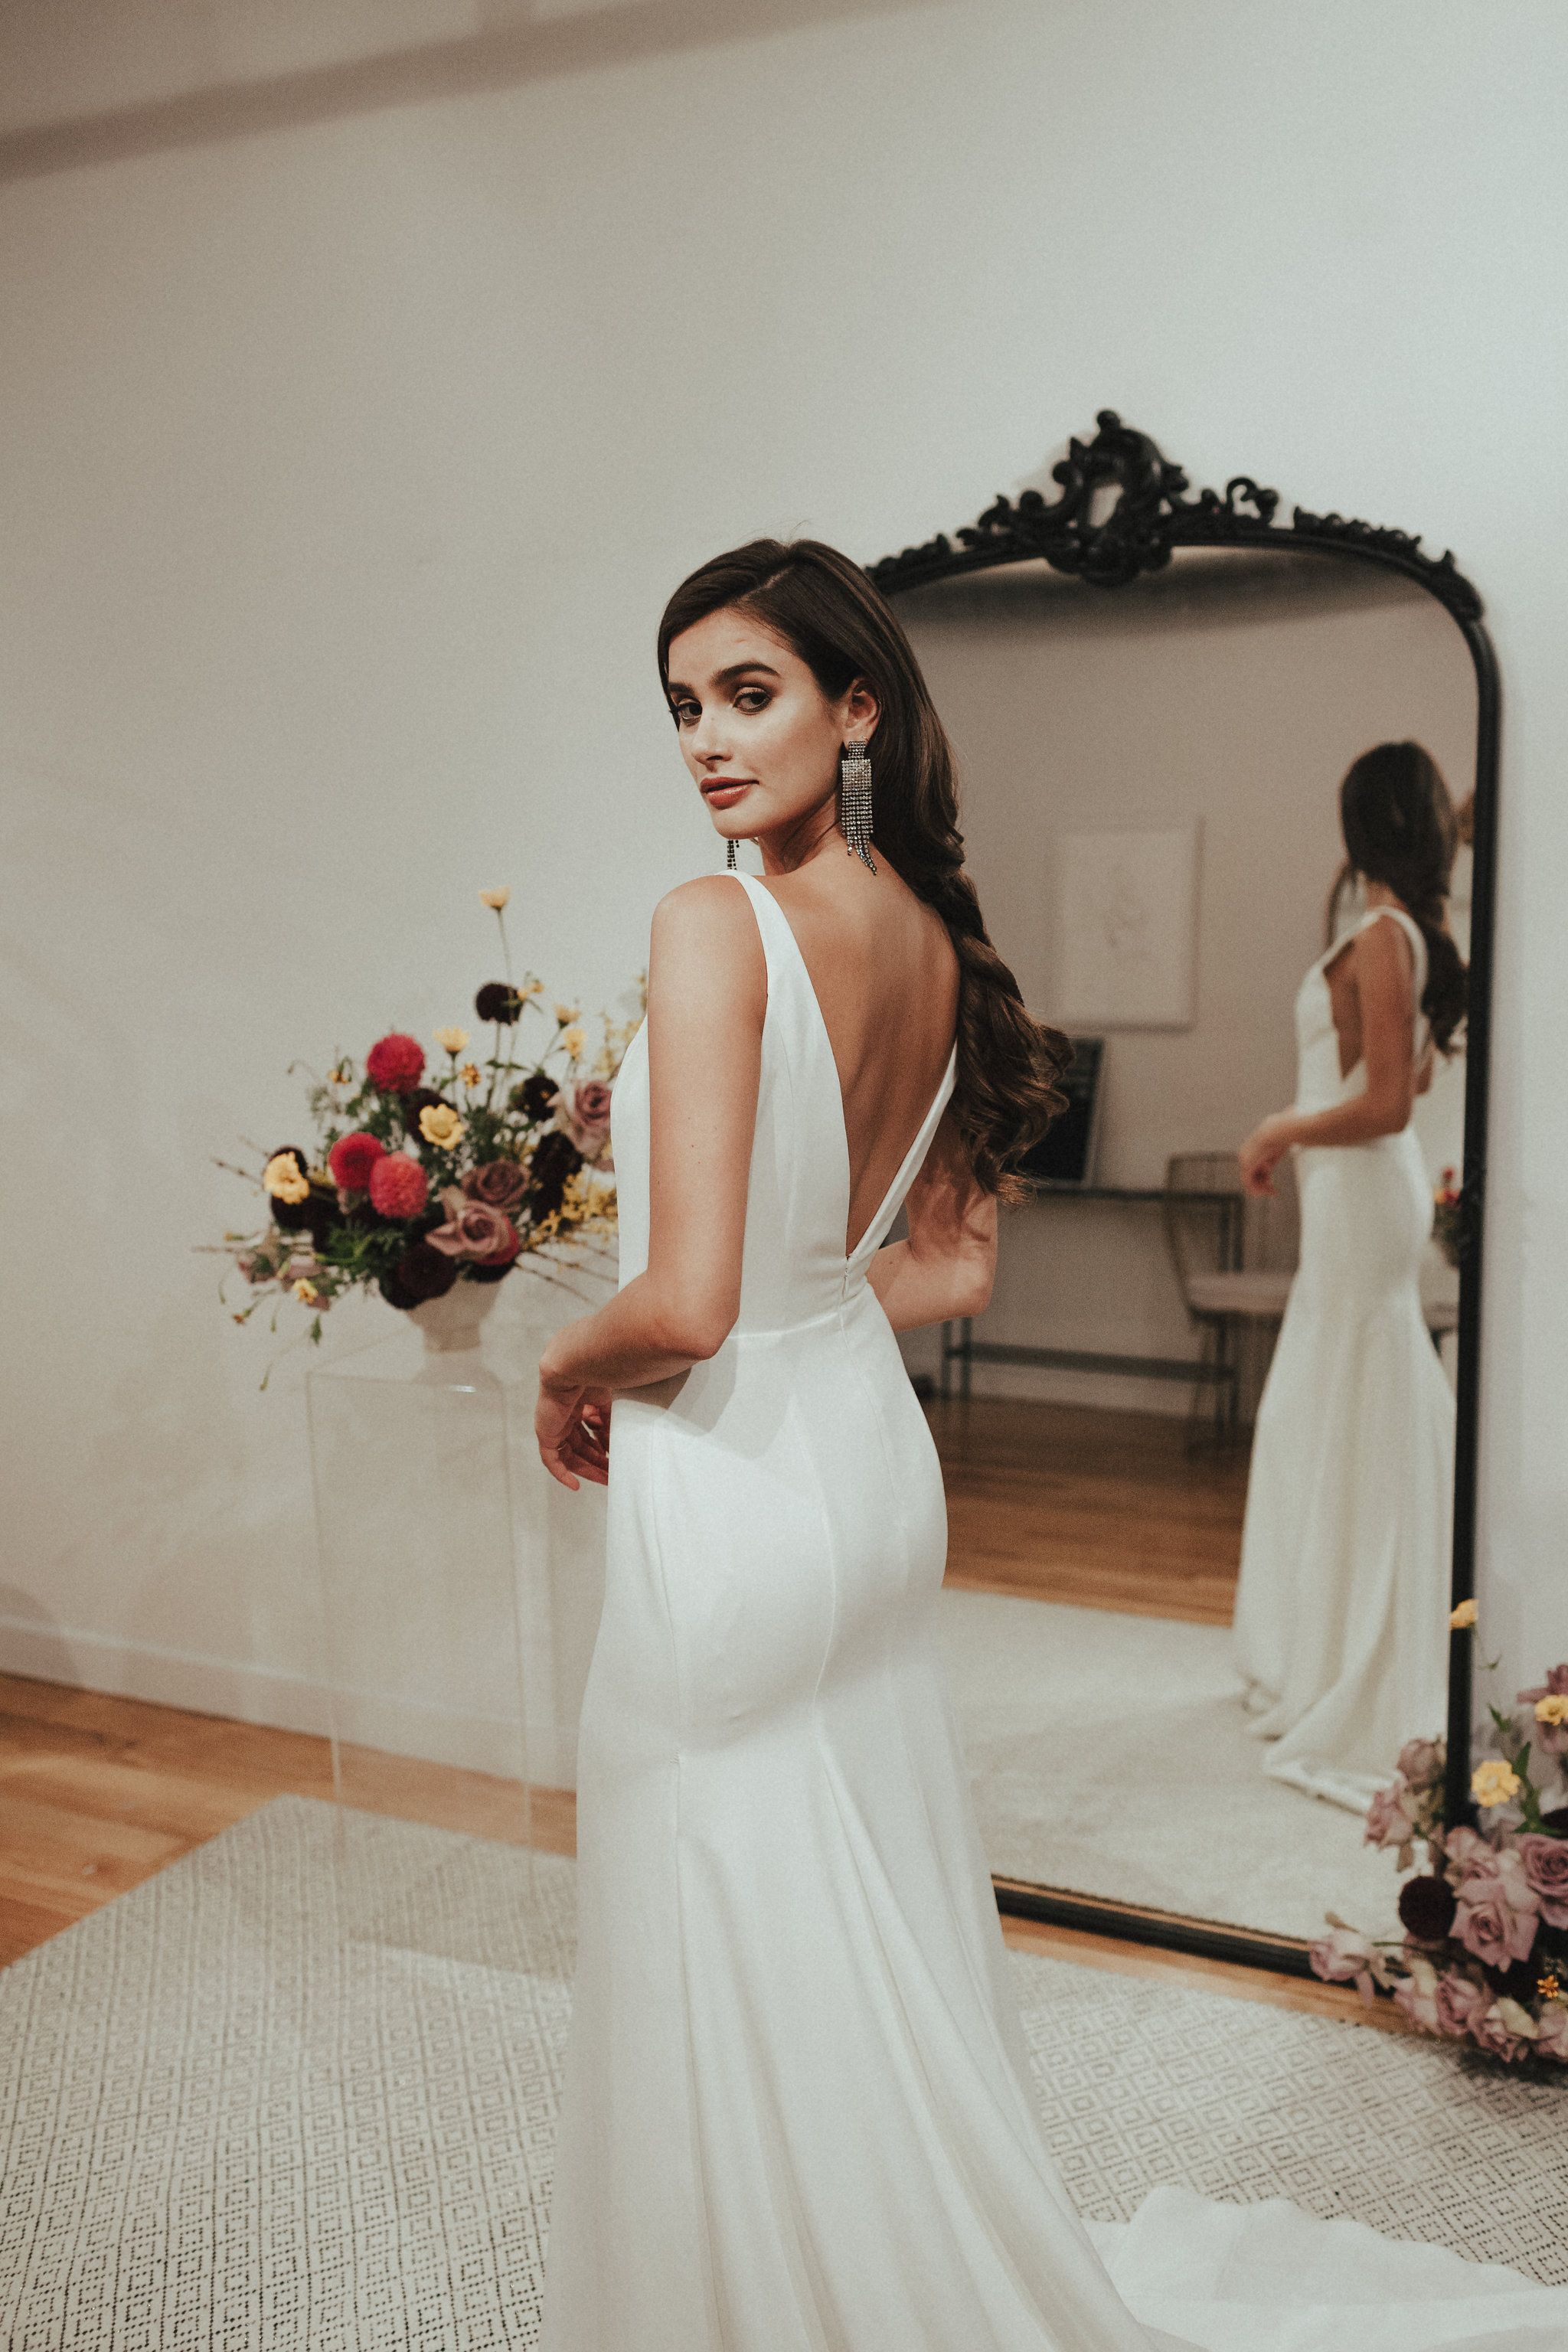 Wedding Dresses Disciplined Simple Elegant Mermaid Wedding Dresses Off The Shoulder Crepe Informal Reception Bridal Gowns Corset Back High Quality Custom